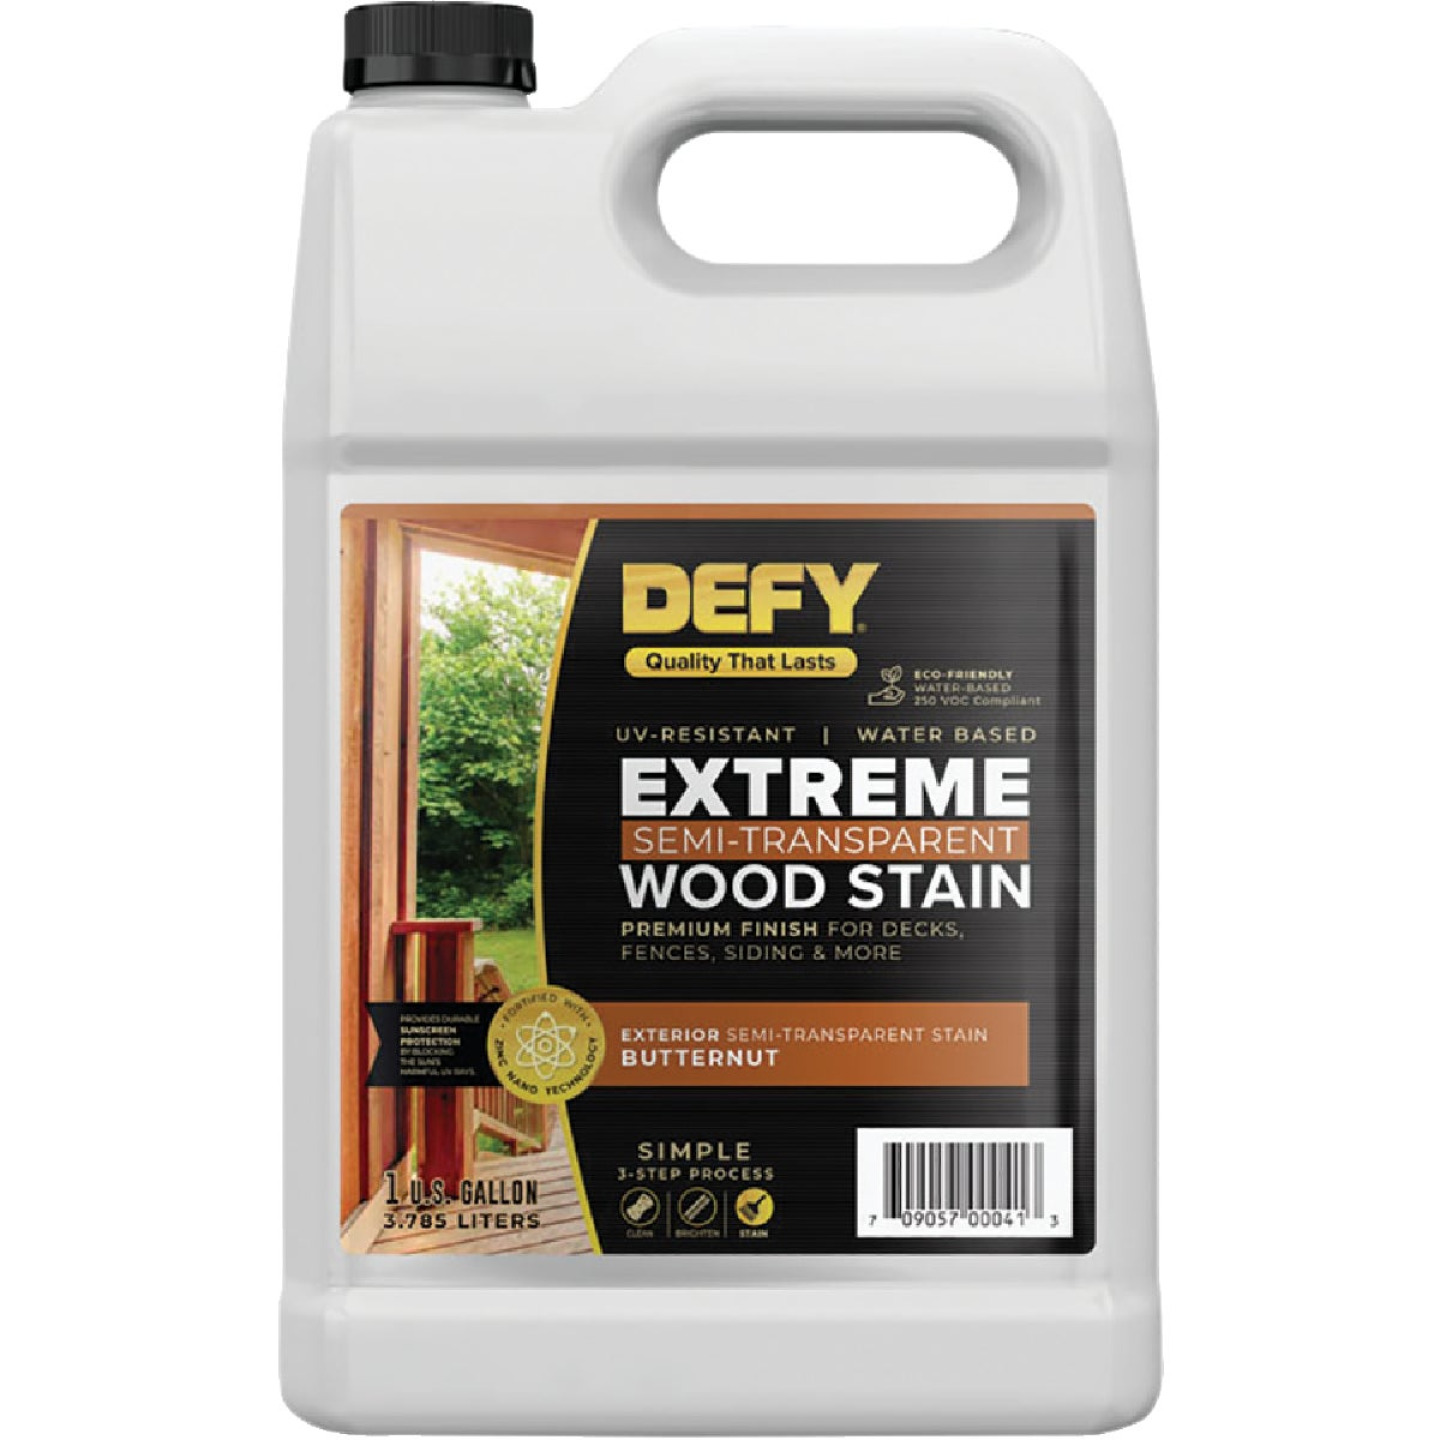 DEFY Extreme Semi-Transparent Exterior Wood Stain, Butternut, 1 Gal. Bottle Image 1